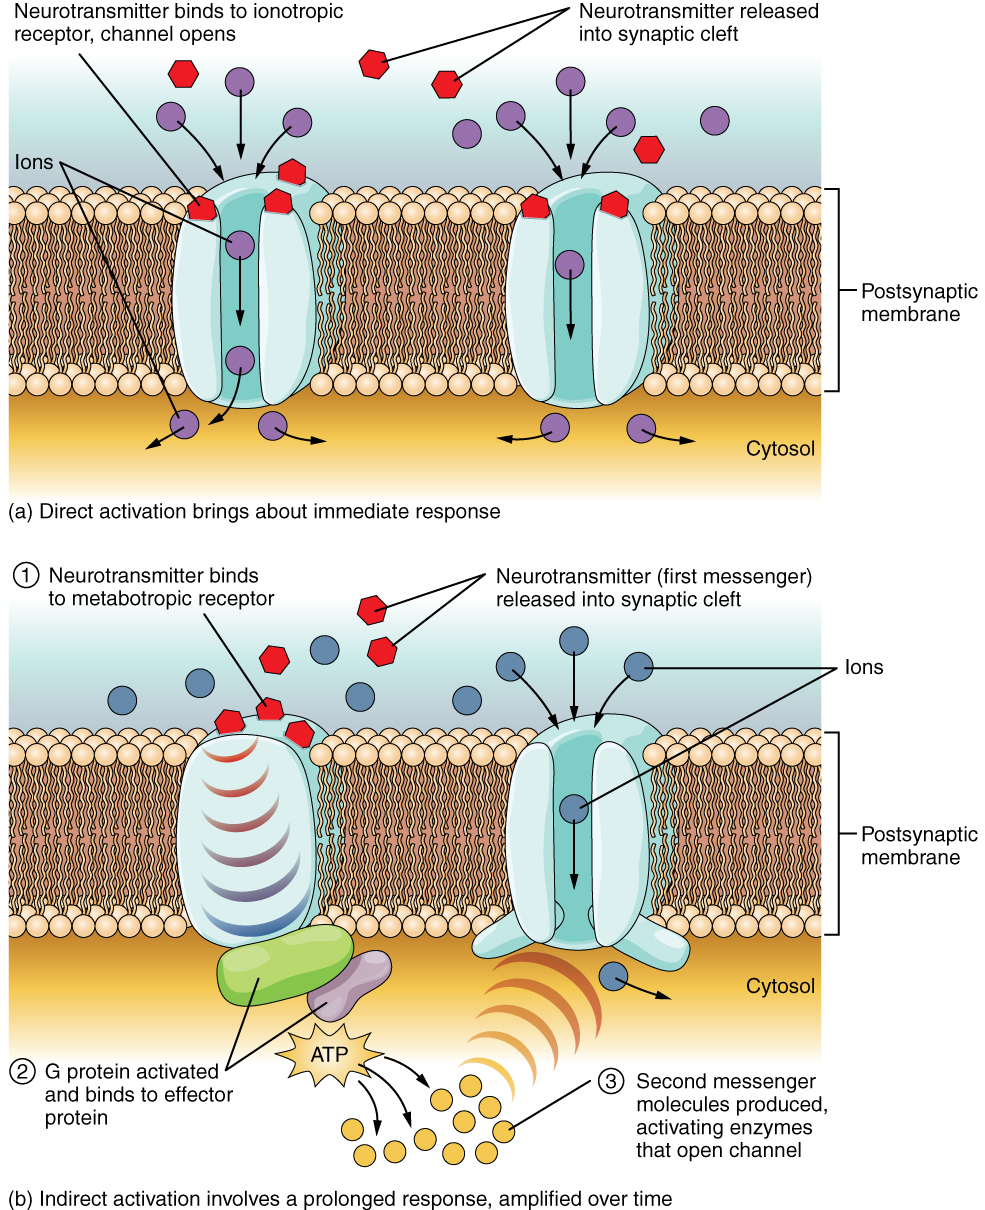 This diagram contains two images, labeled A and B. Both images show a cross section of a postsynaptic membrane. There are two proteins embedded in each of the two membrane cross sections. In diagram A, direct activation brings about an immediate response. Here, both of the membrane proteins are ion channels. Several hexagonal neurotransmitters bind to ionotropic receptors on the extracellular fluid side of the channels. The binding of neurotransmitters causes the channels to open, allowing ions to flow from the extracellular fluid into the cytosol. Image B shows indirect activation, which involves a prolonged response, amplified over time. Here, one of the cell membrane proteins is solid while the other is a channel. Neurotransmitters bind to metabotropic receptors on the extracellular side of the solid protein. This triggers the solid protein to activate a G protein in the cytoplasm. The G protein binds to an effector protein in the cytoplasm, which results in the production of several second messenger particles. The second messenger activates enzymes that open the channel protein, allowing ions to enter the cytoplasm.